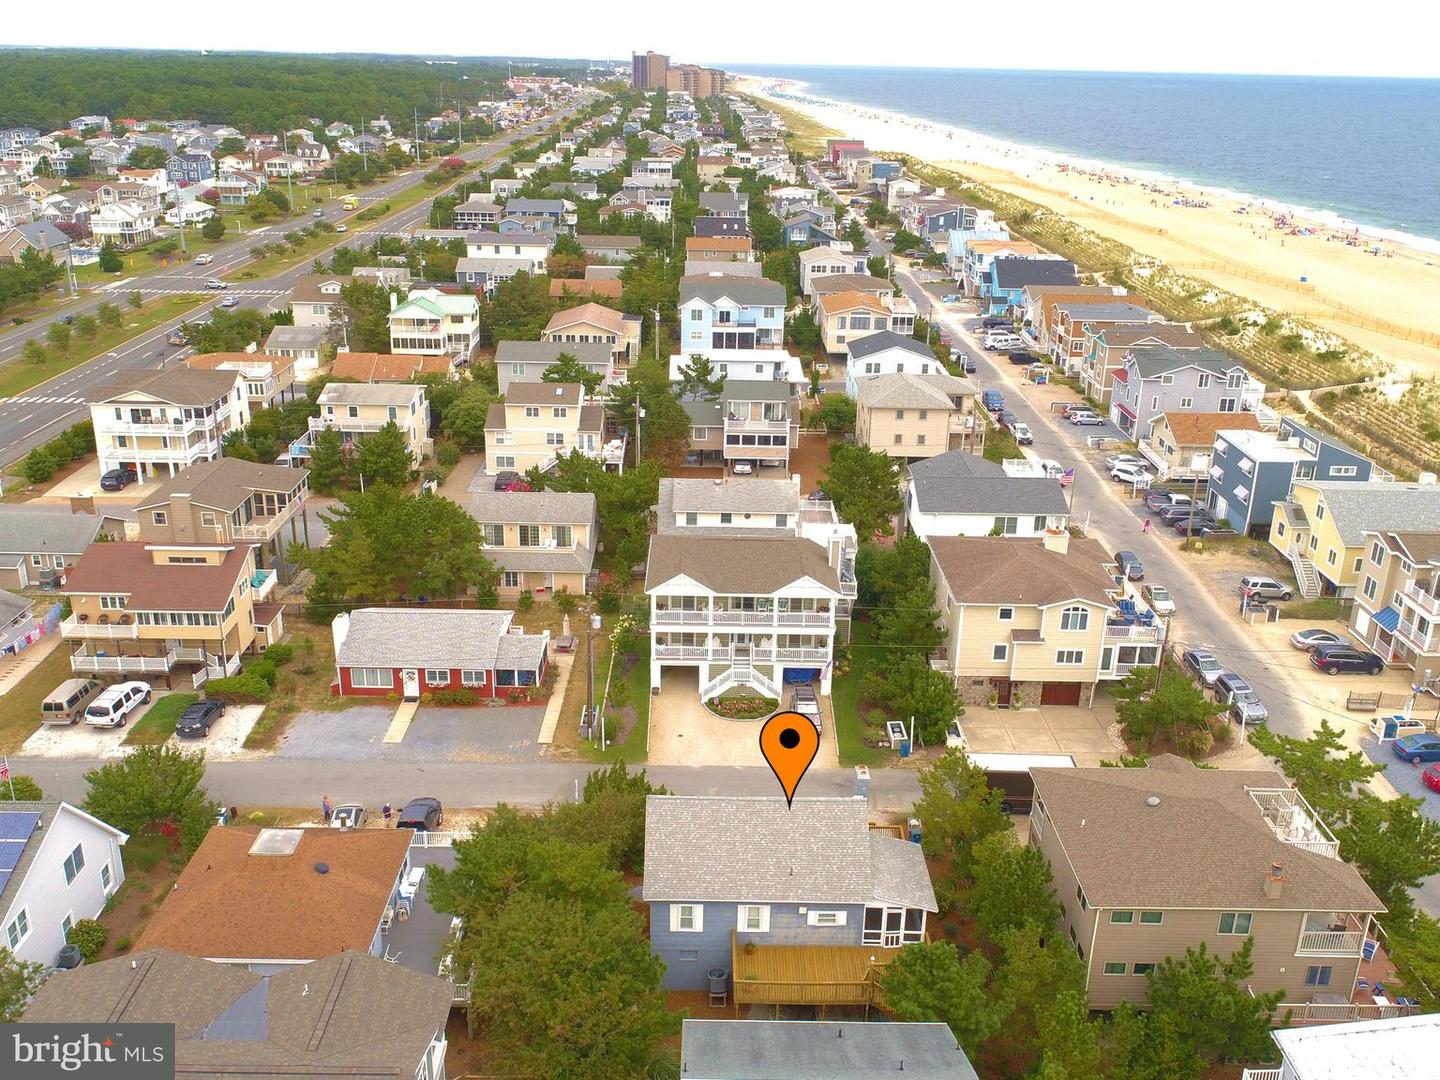 1002299338-300501703089-2018-08-30-10-08-41 4 S 4th St | South Bethany, DE Real Estate For Sale | MLS# 1002299338  - 1st Choice Properties